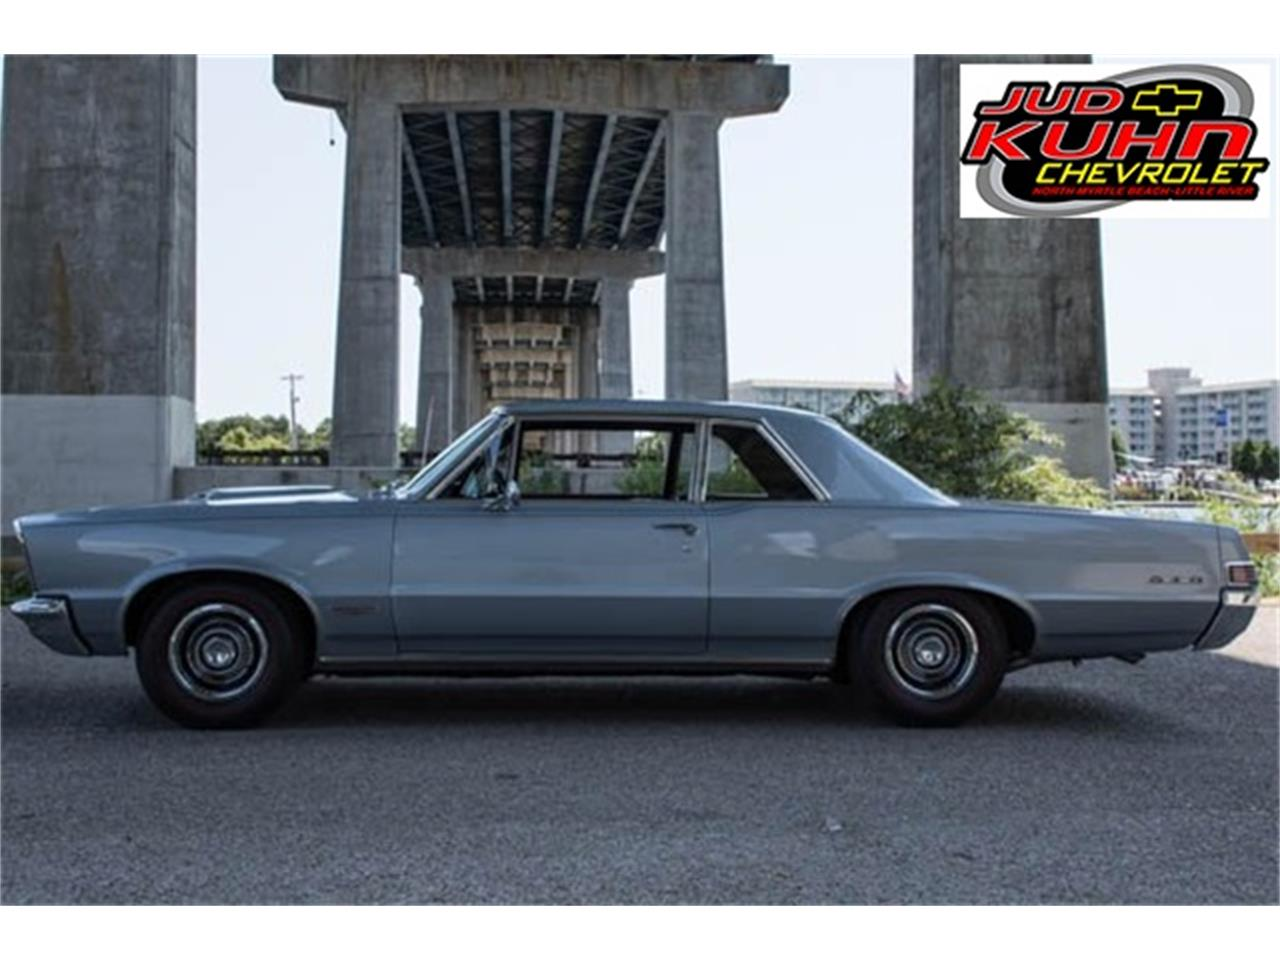 Large Picture of 1965 Pontiac GTO located in South Carolina Offered by Jud Kuhn Chevrolet - J909